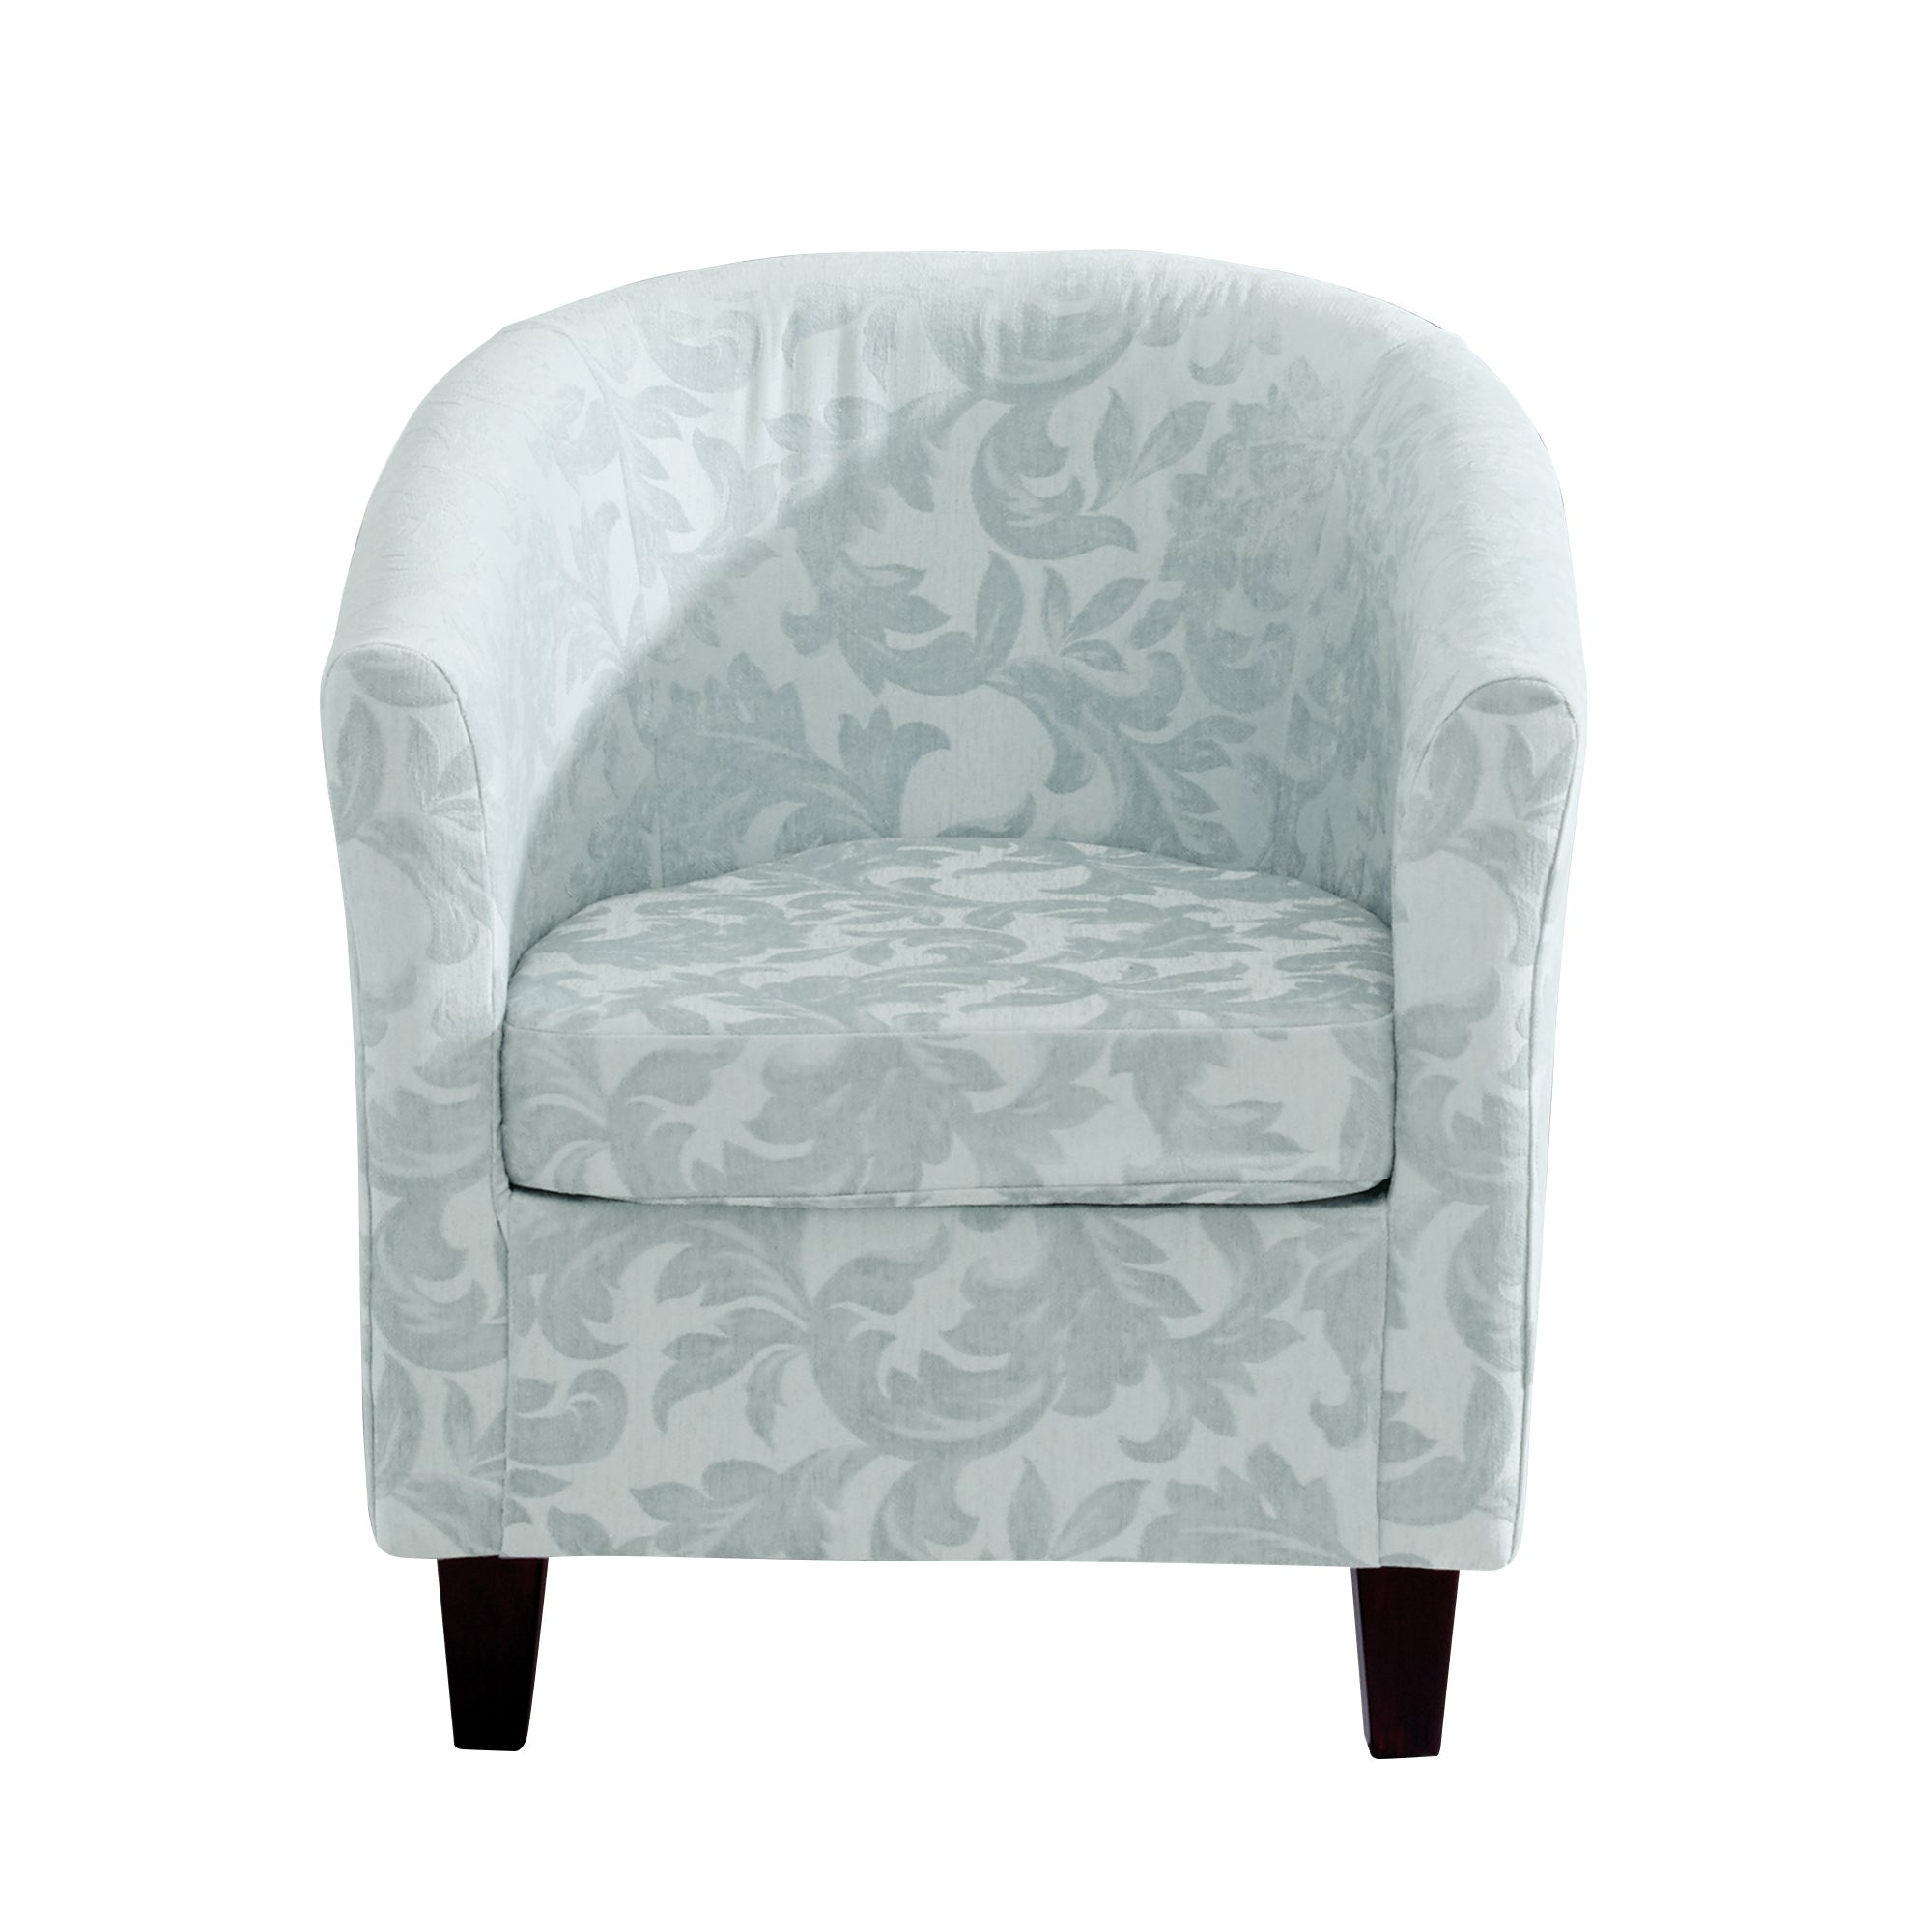 Mayfair Floral Tub Chair